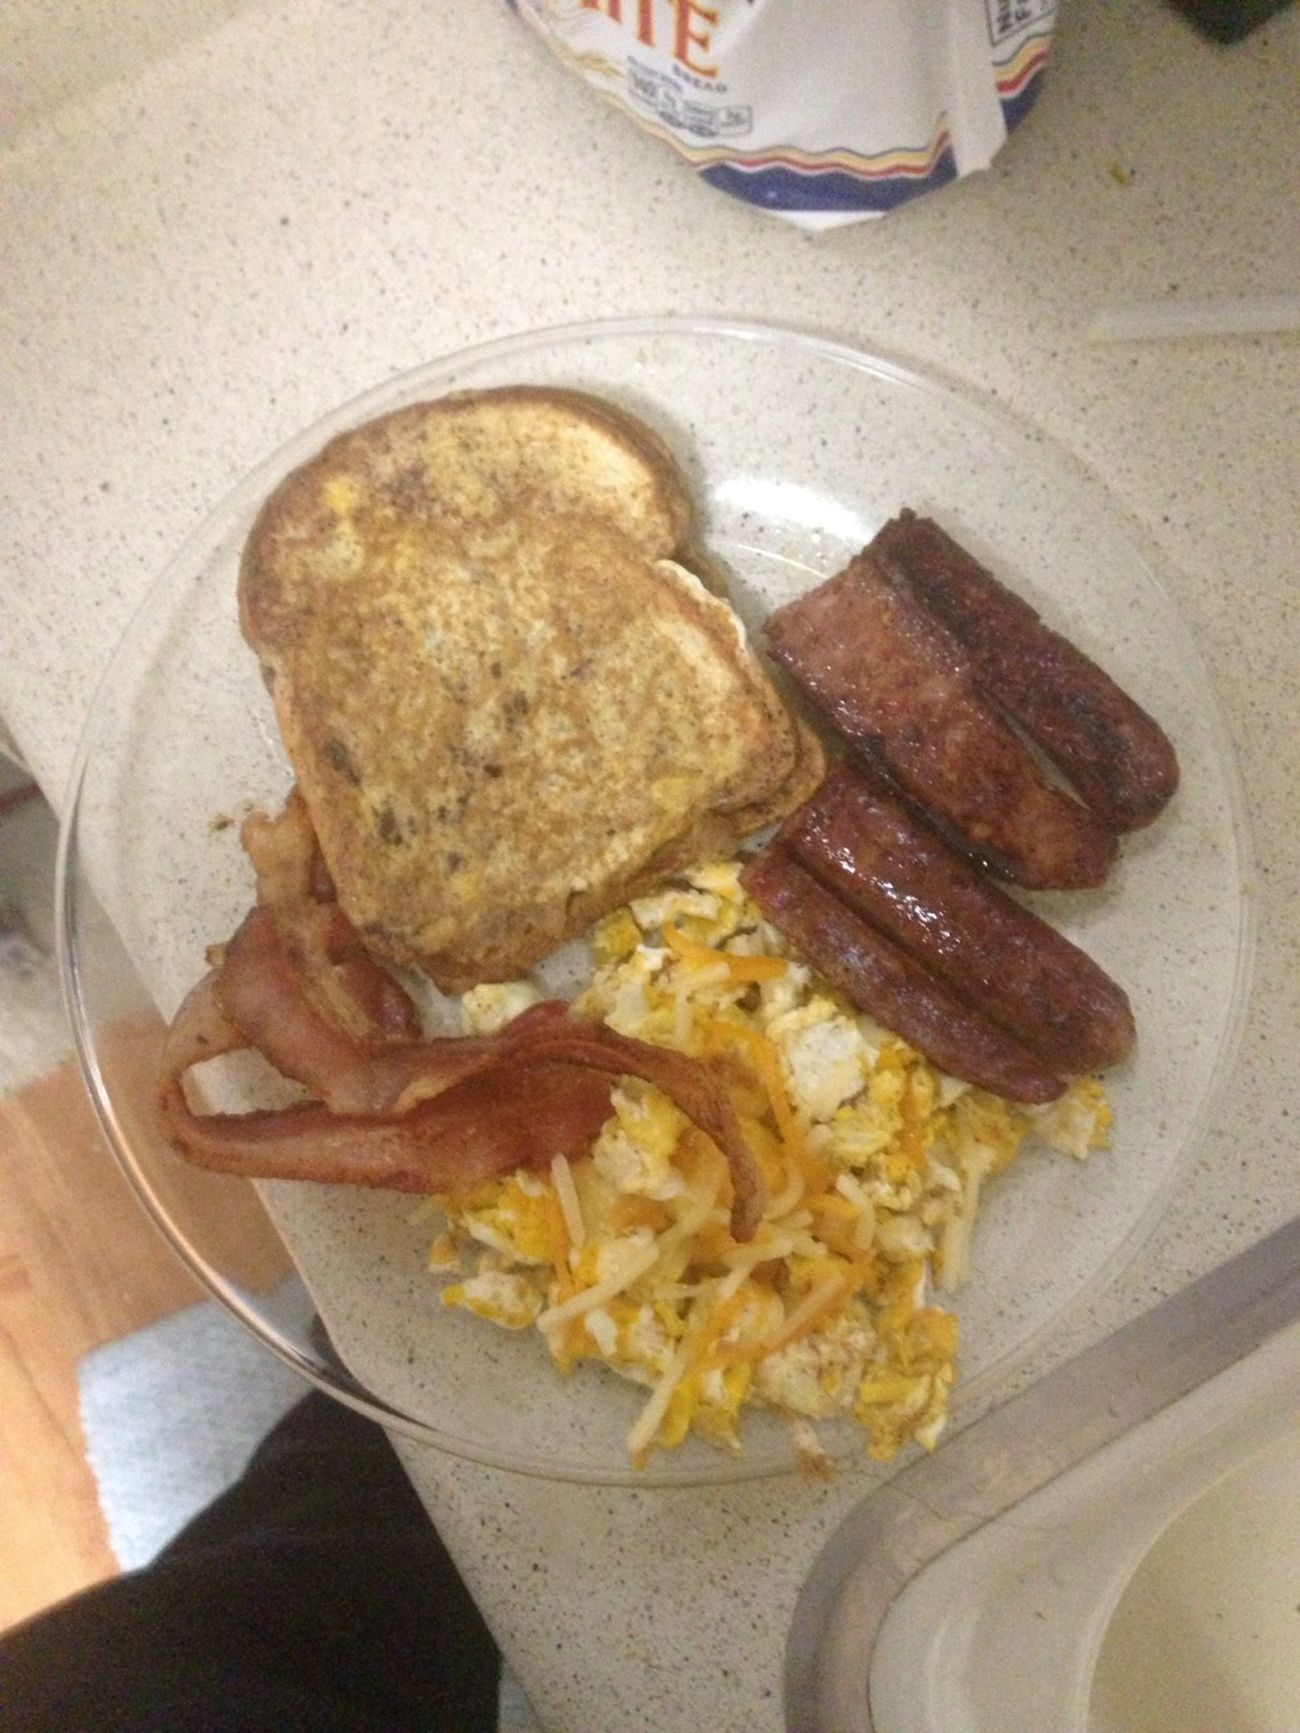 A Real Thugs Breakfast...